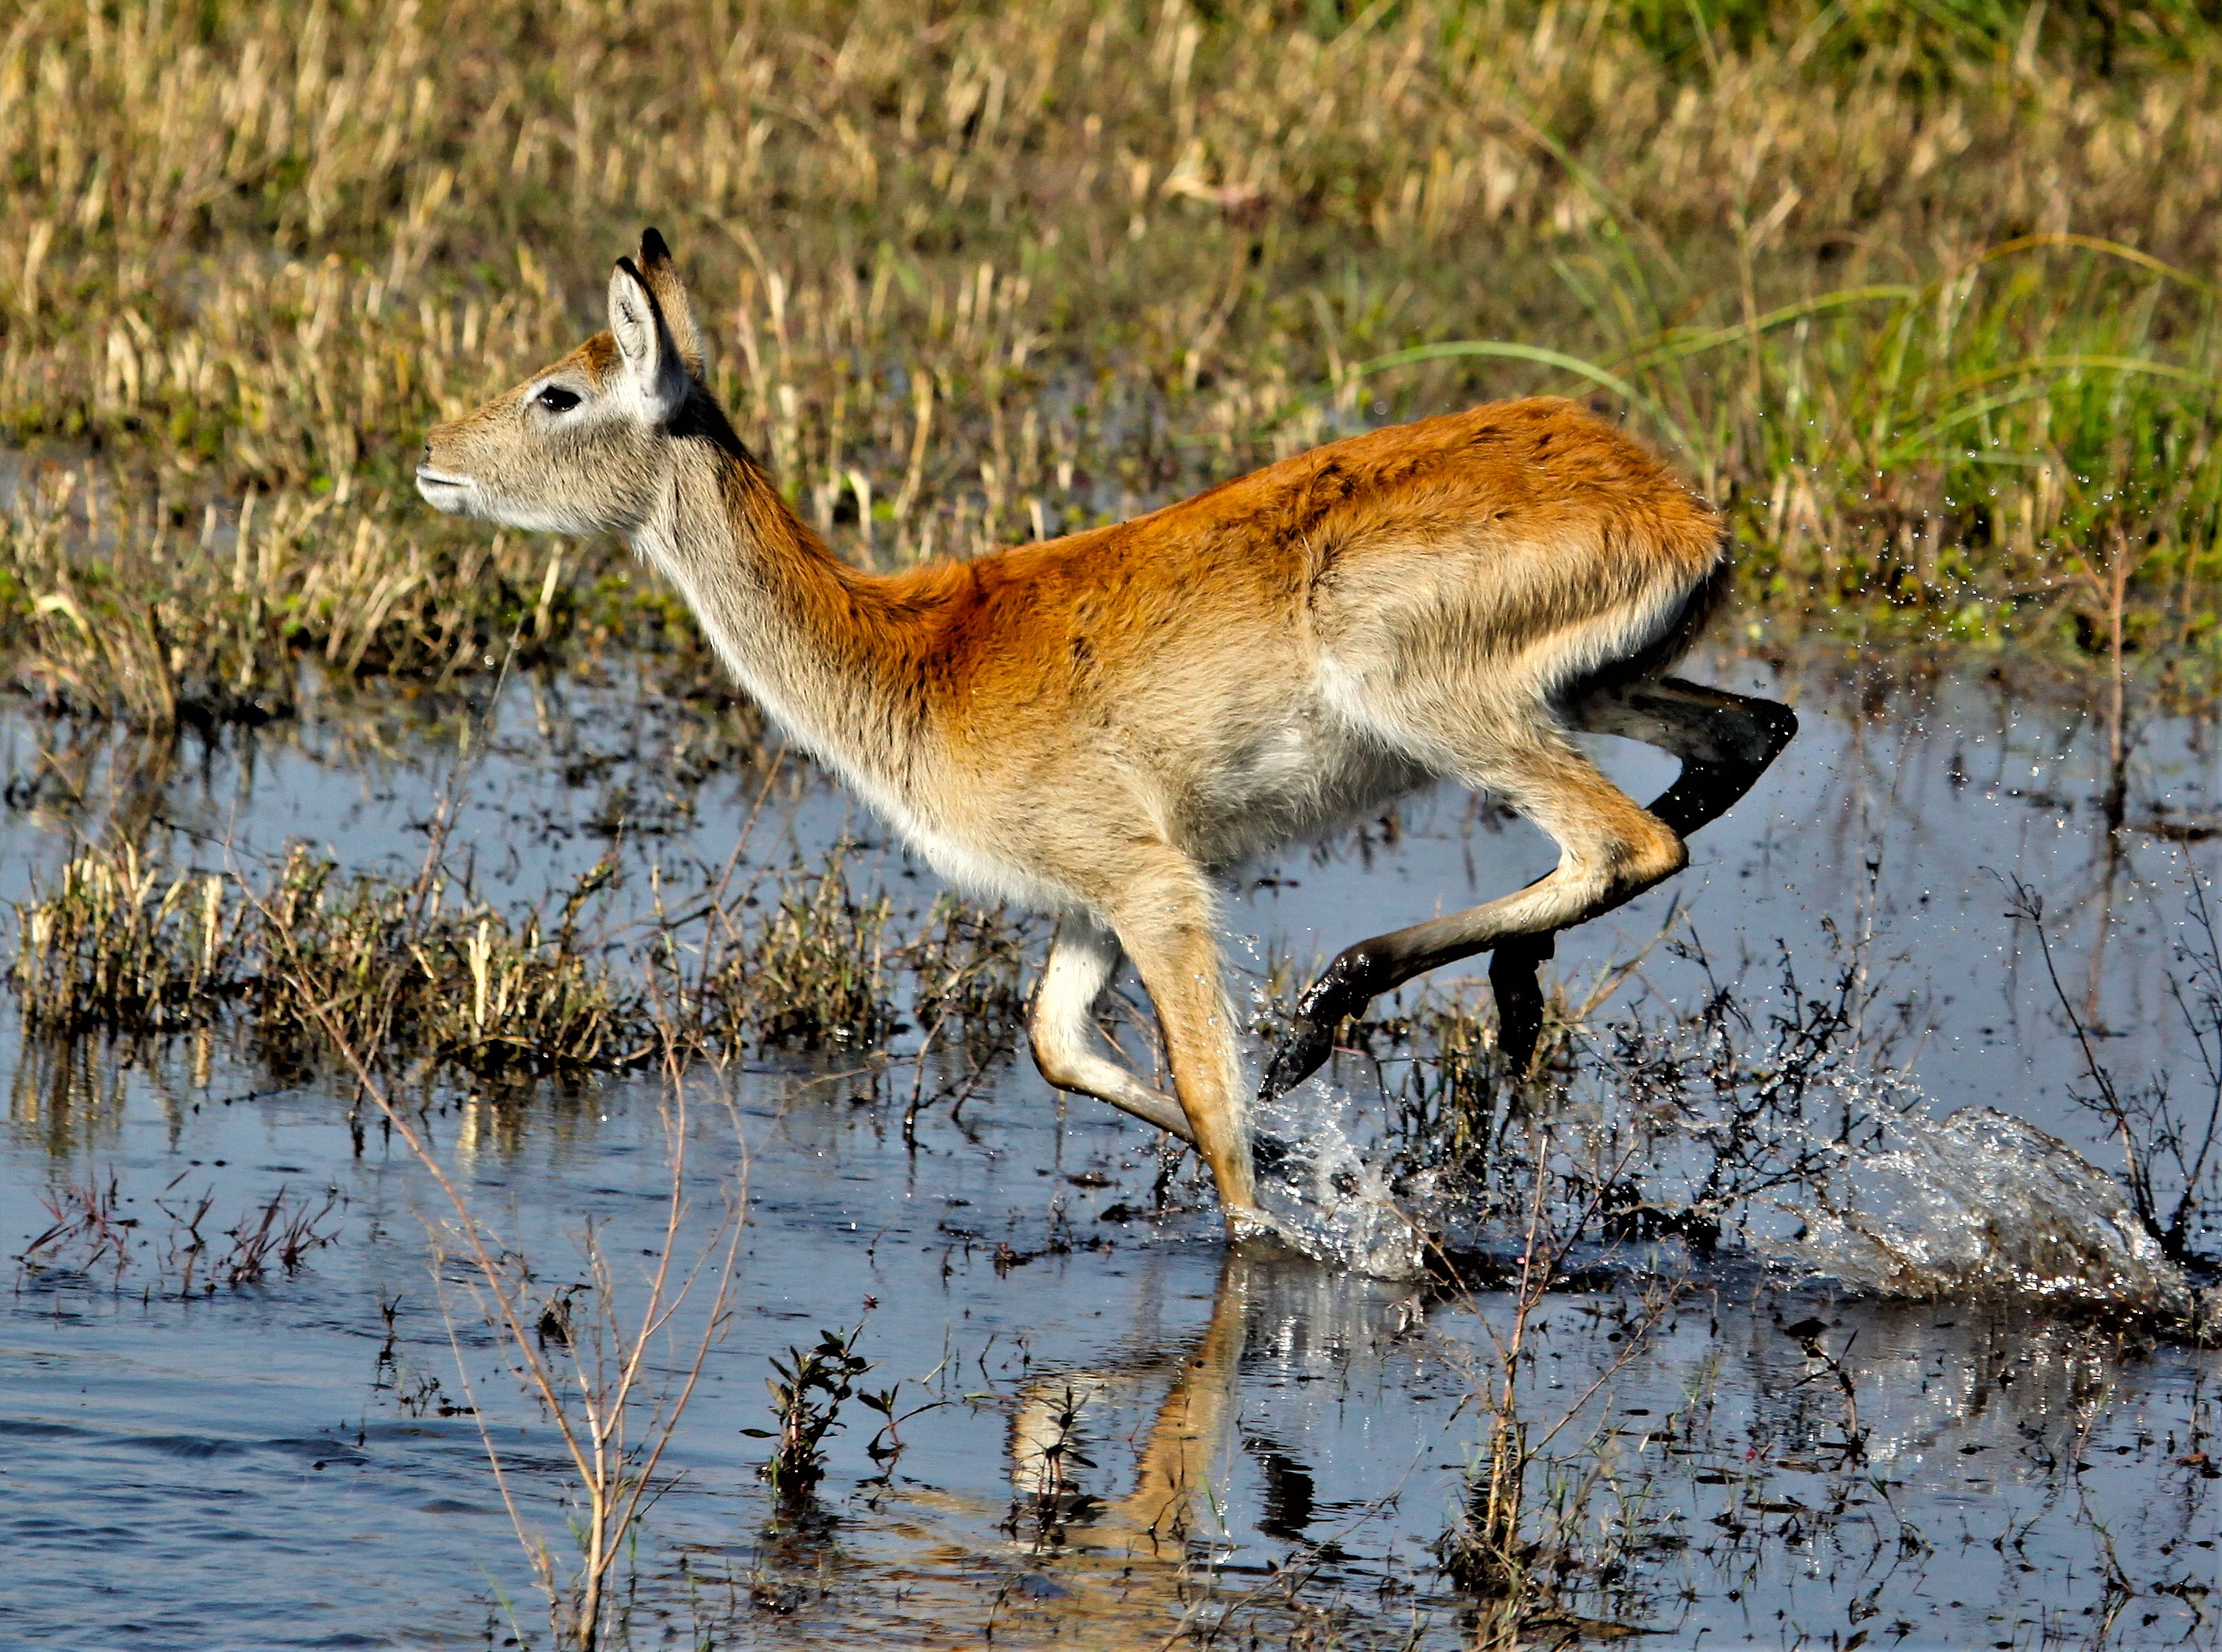 Leaping_Lechwe (2)